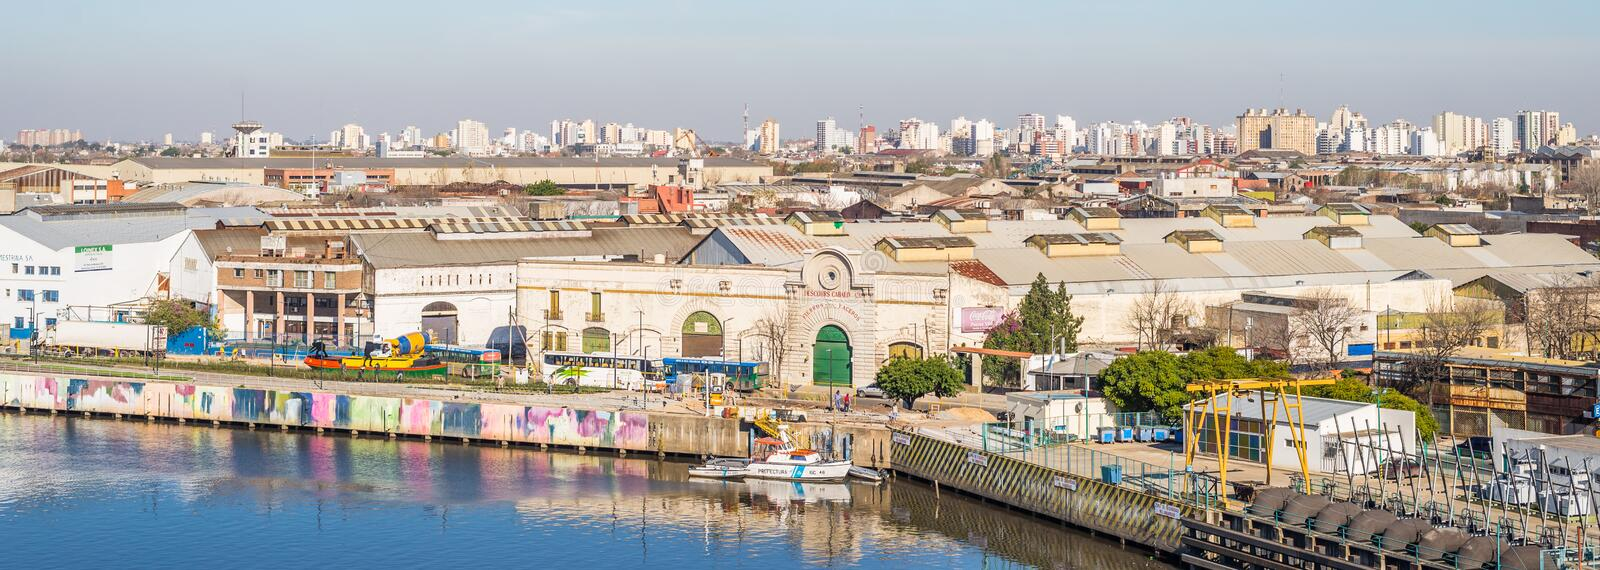 Buenos Aires, Argentina - July 18, 2017: View at La Boca neighborhood. View at La Boca neighborhood on a sunny day stock image